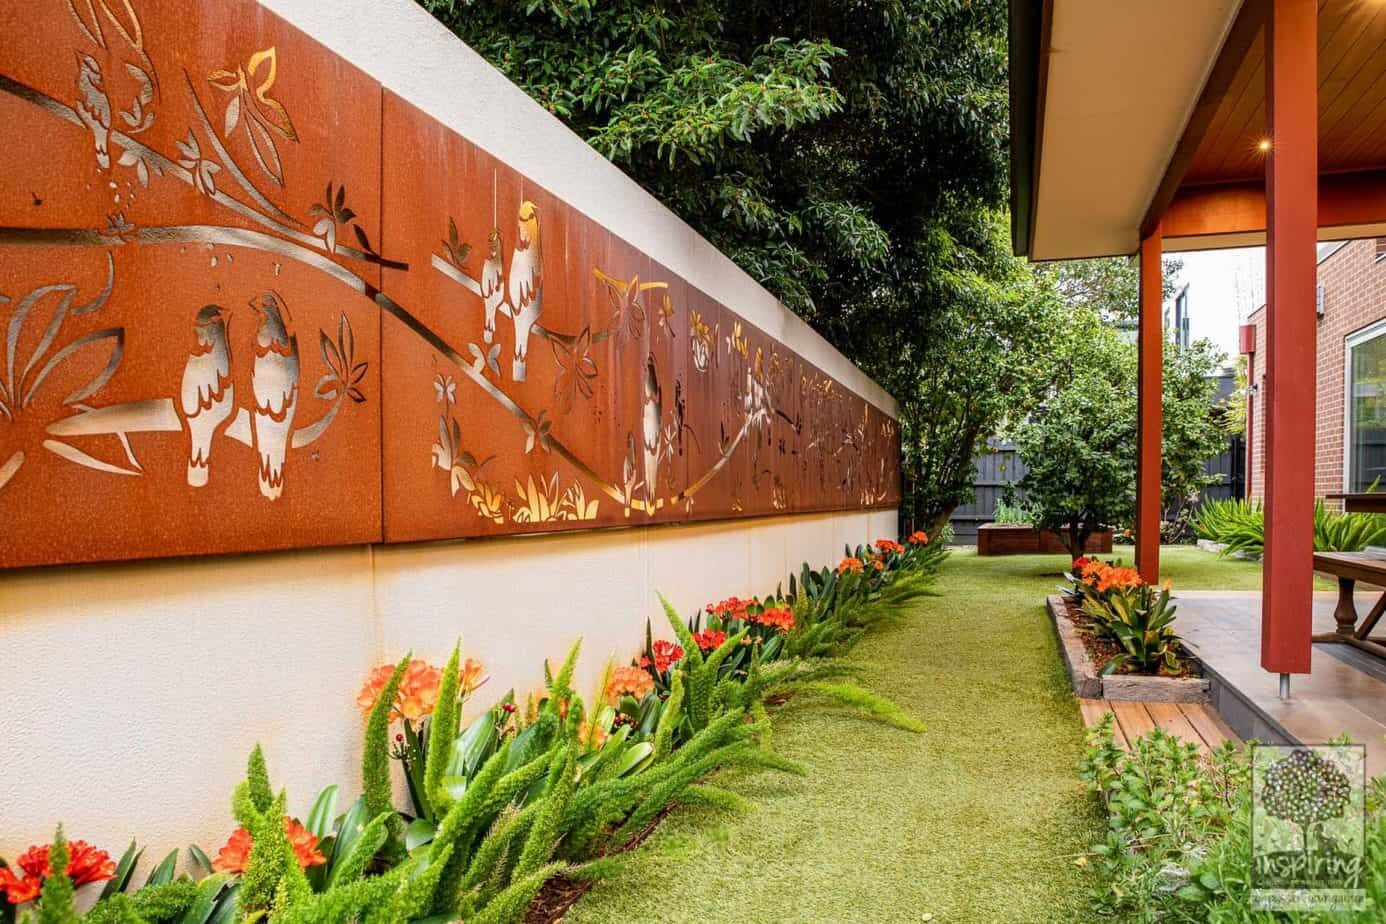 Corten wall lightbox used in Glen Waverley garden design